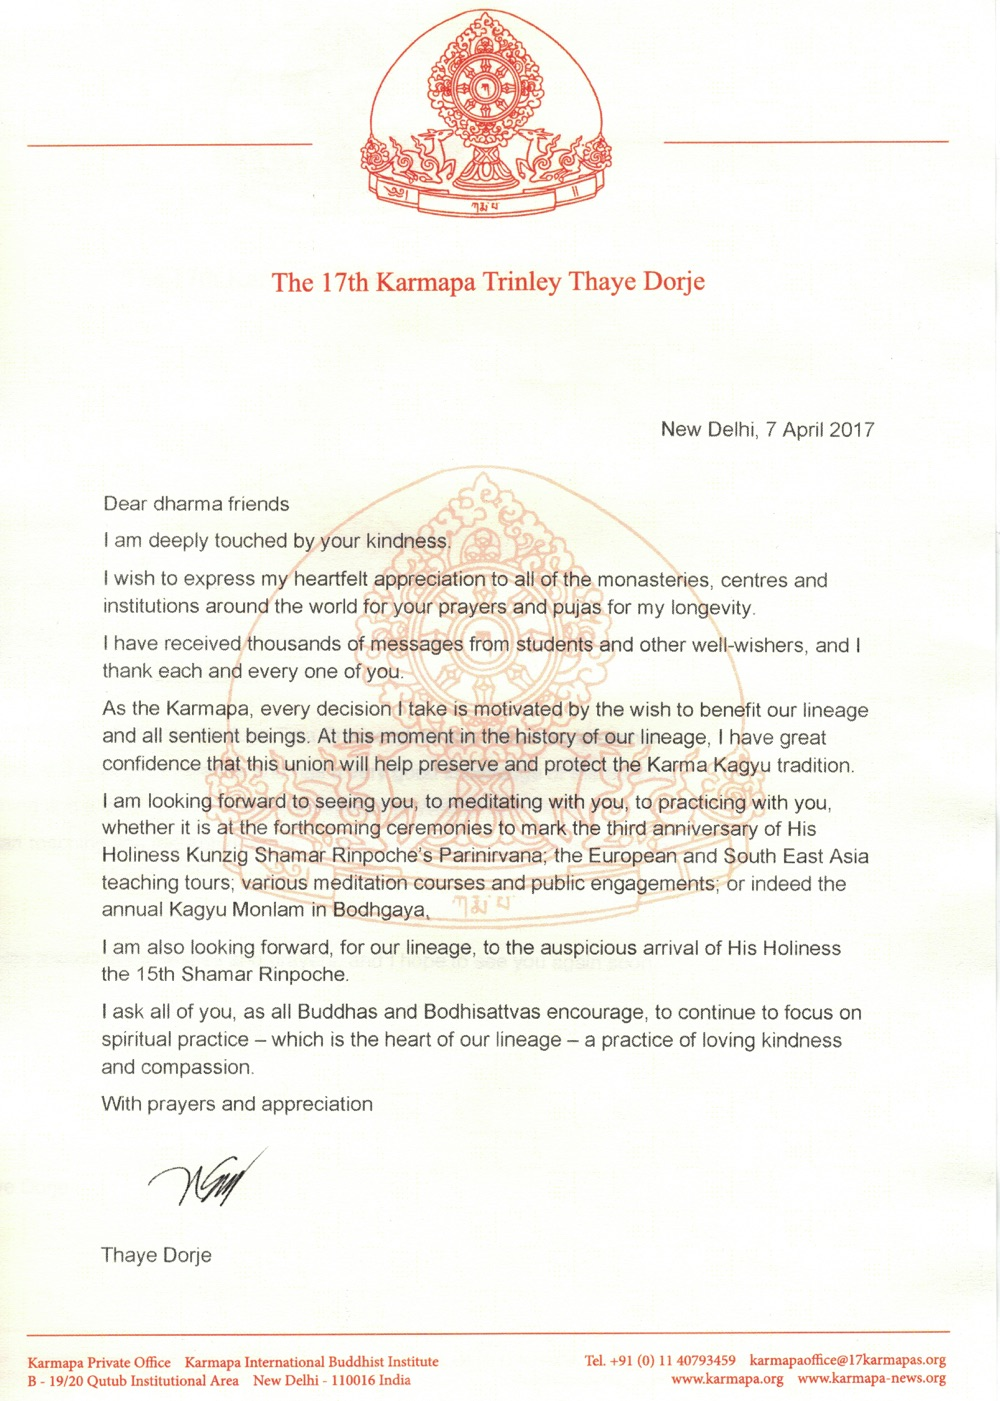 A letter of appreciation from karmapa the 17th karmapa official letter of appreciation from thaye dorje his holiness the 17th gyalwa karmapa altavistaventures Images